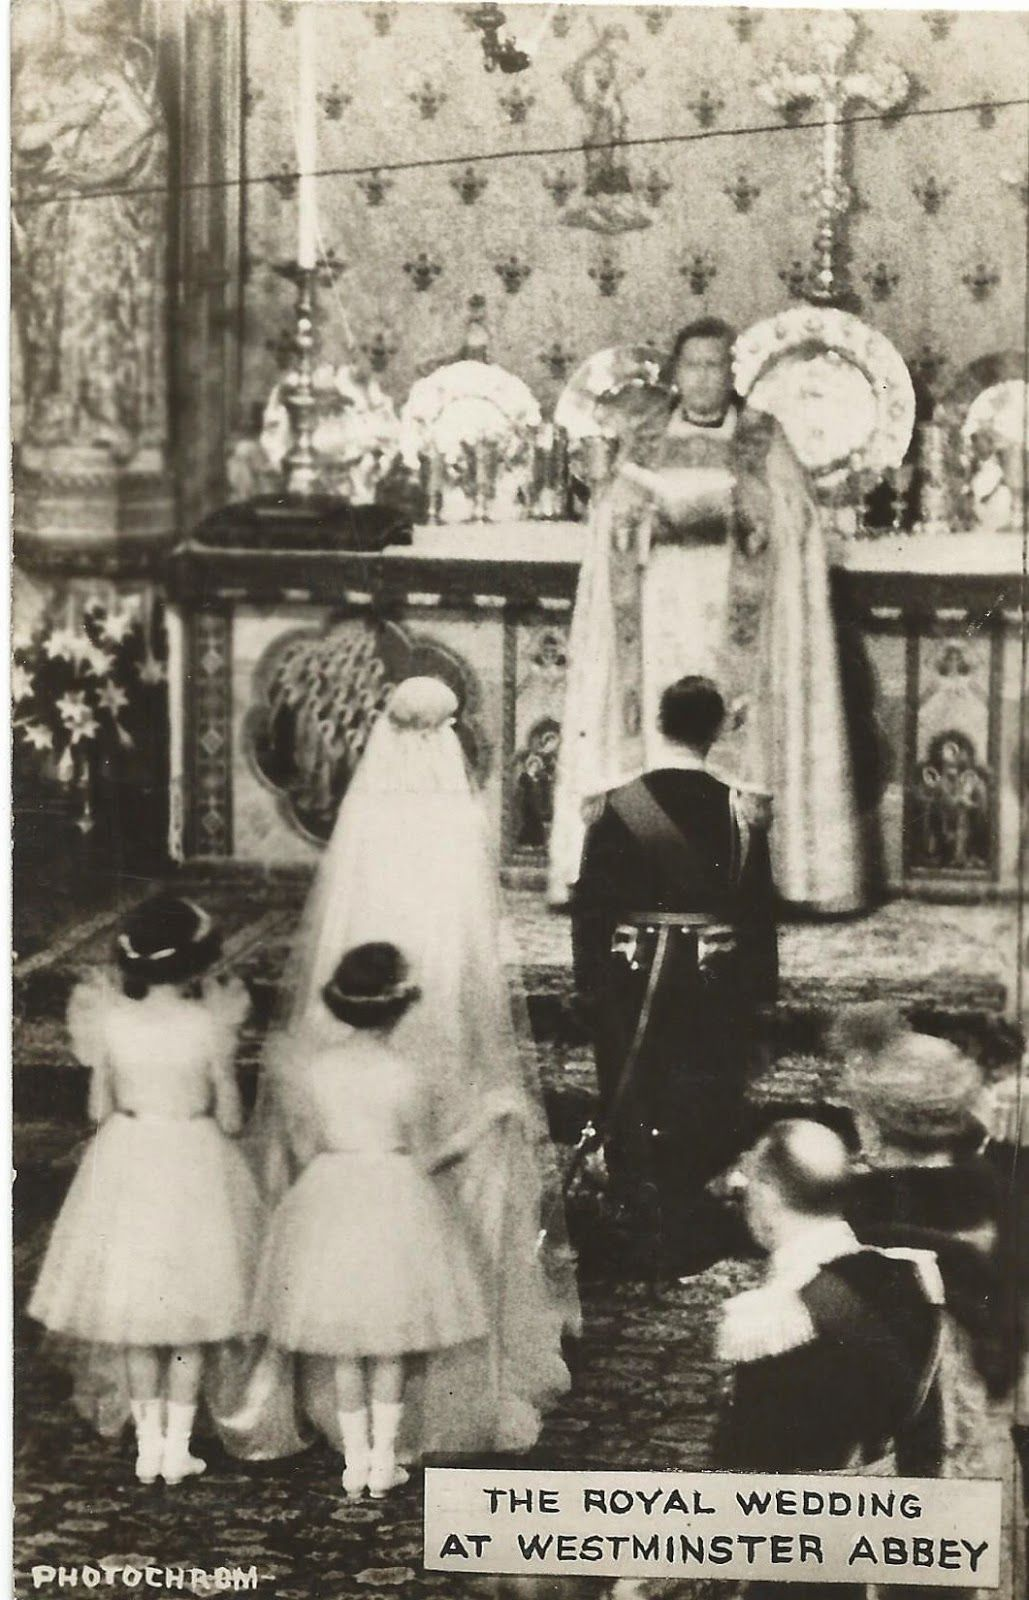 Wedding Cake Of Hm King Constantine Ii Of Greece In 1964 Google Search Images Of Princess Constantine Ii Of Greece Greece [ 1600 x 1029 Pixel ]